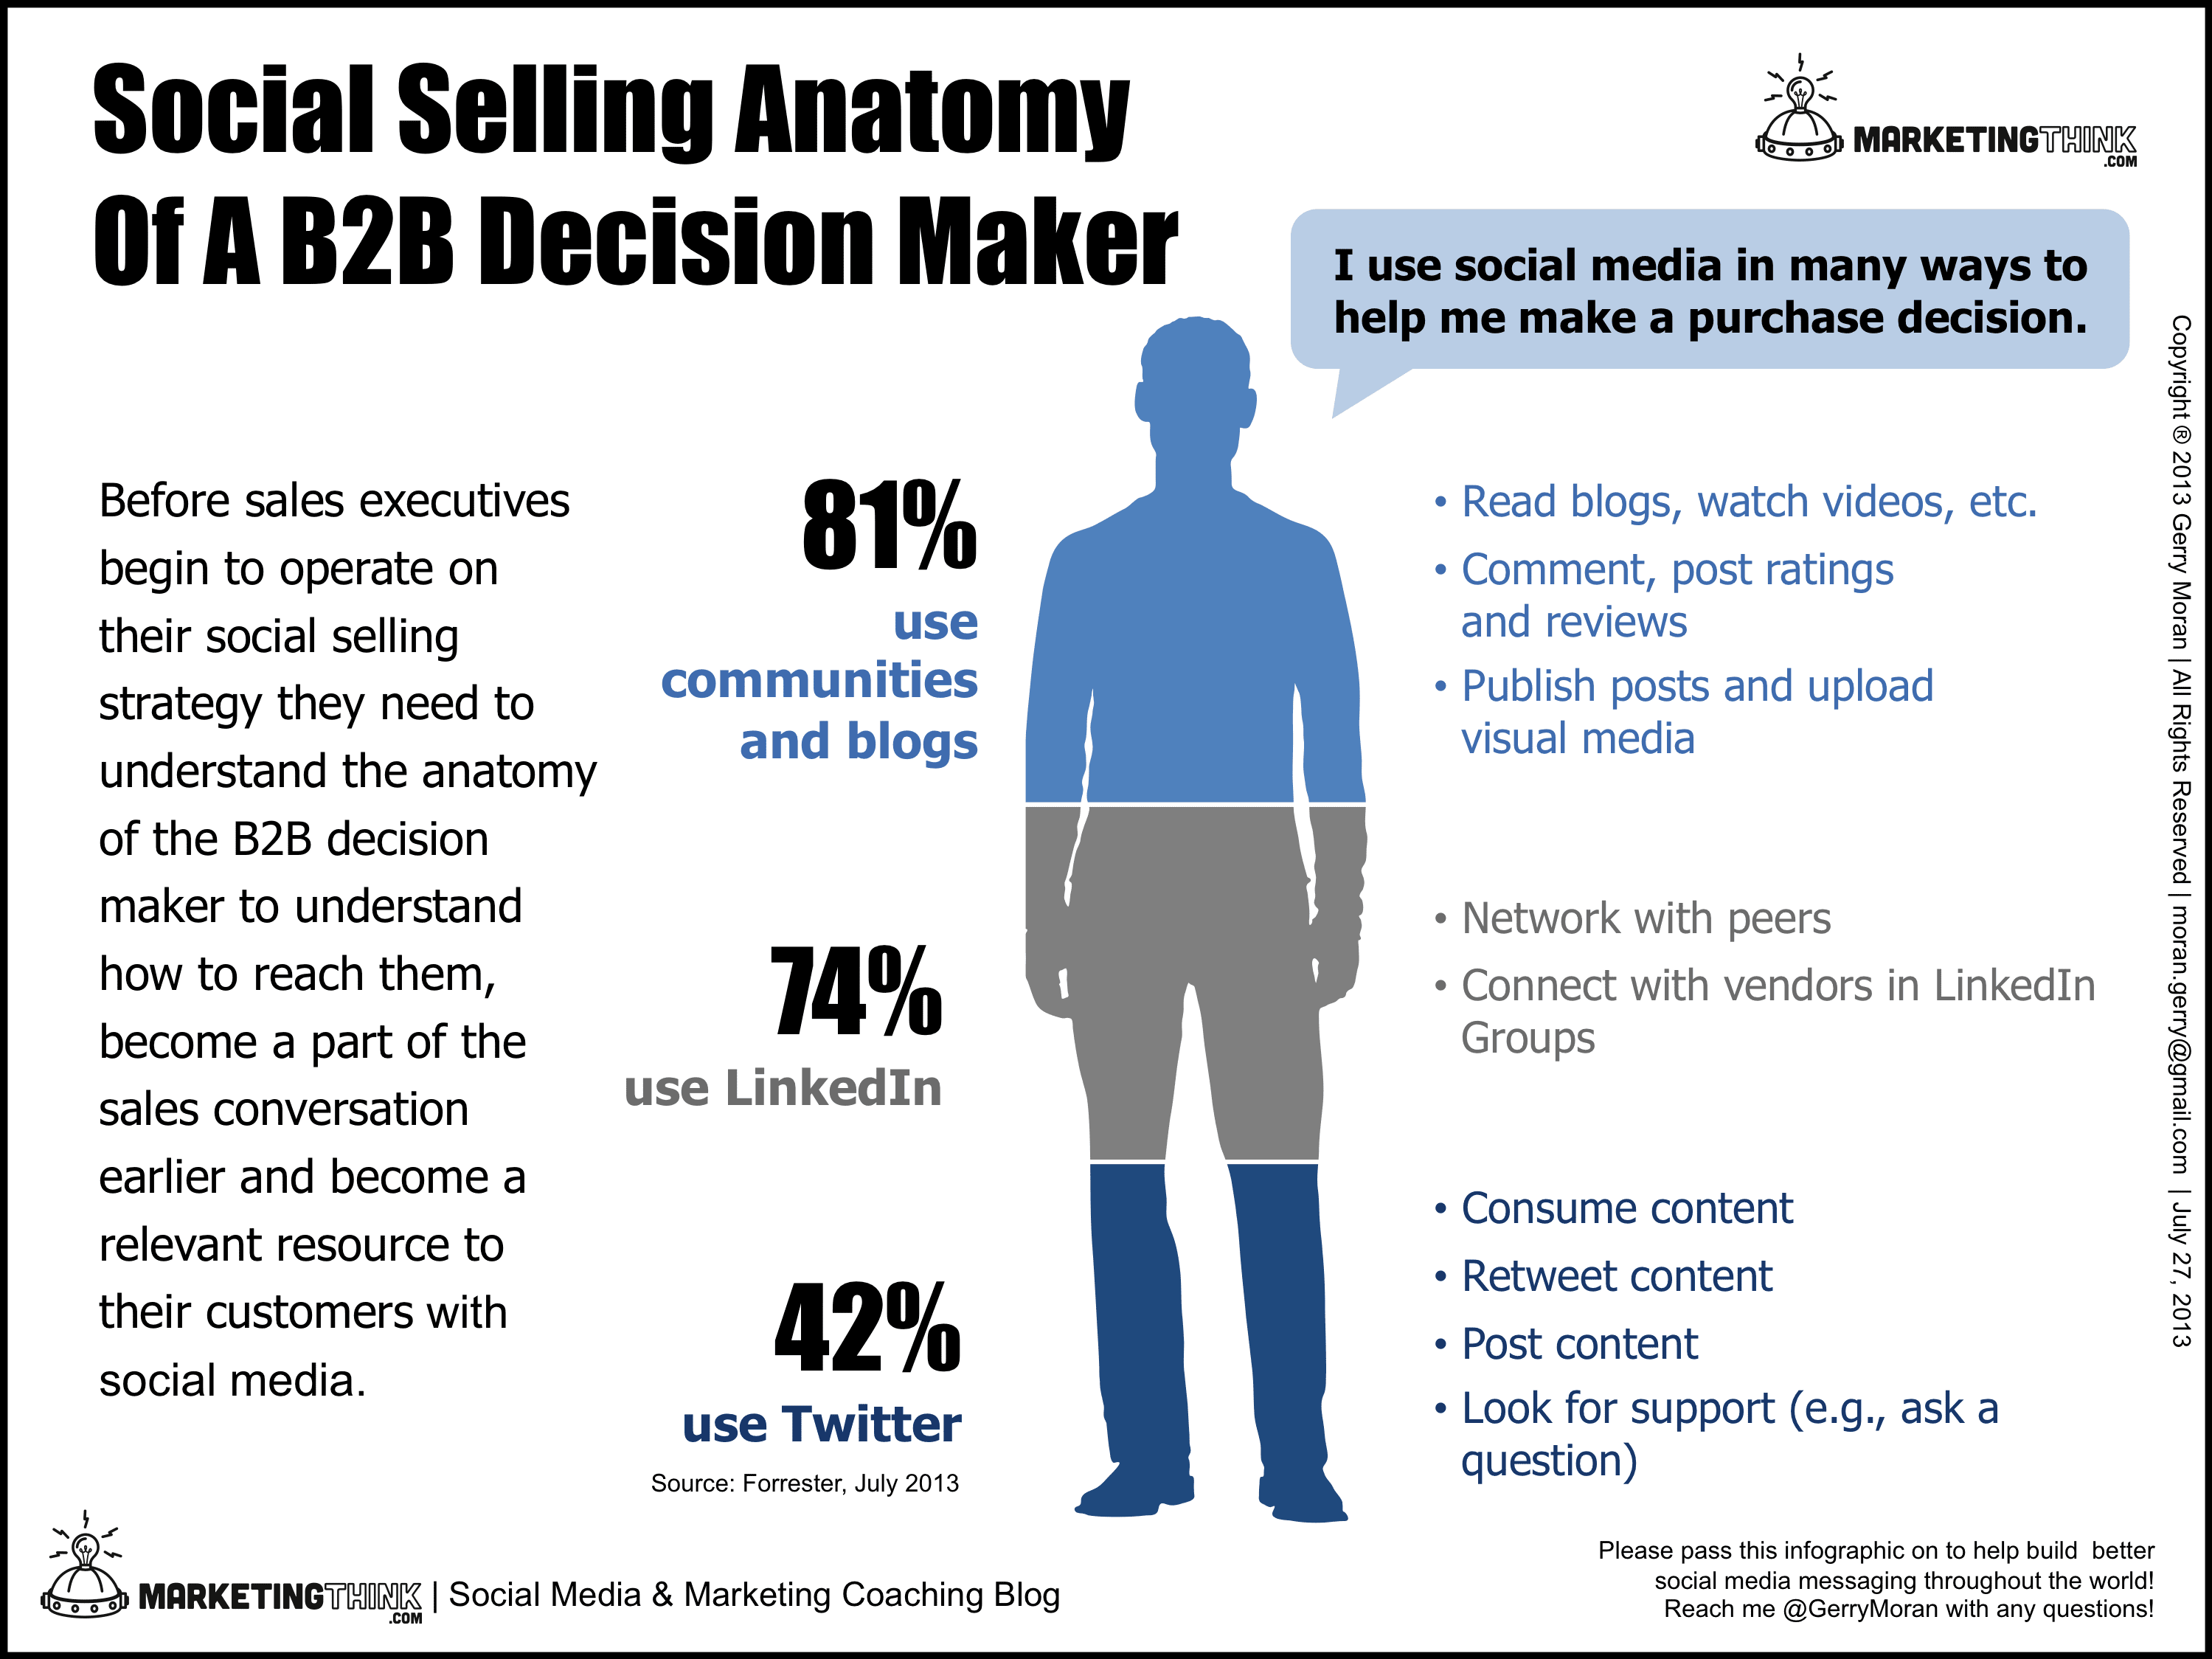 Social Selling Anatomy Of A B2B Decision-Maker